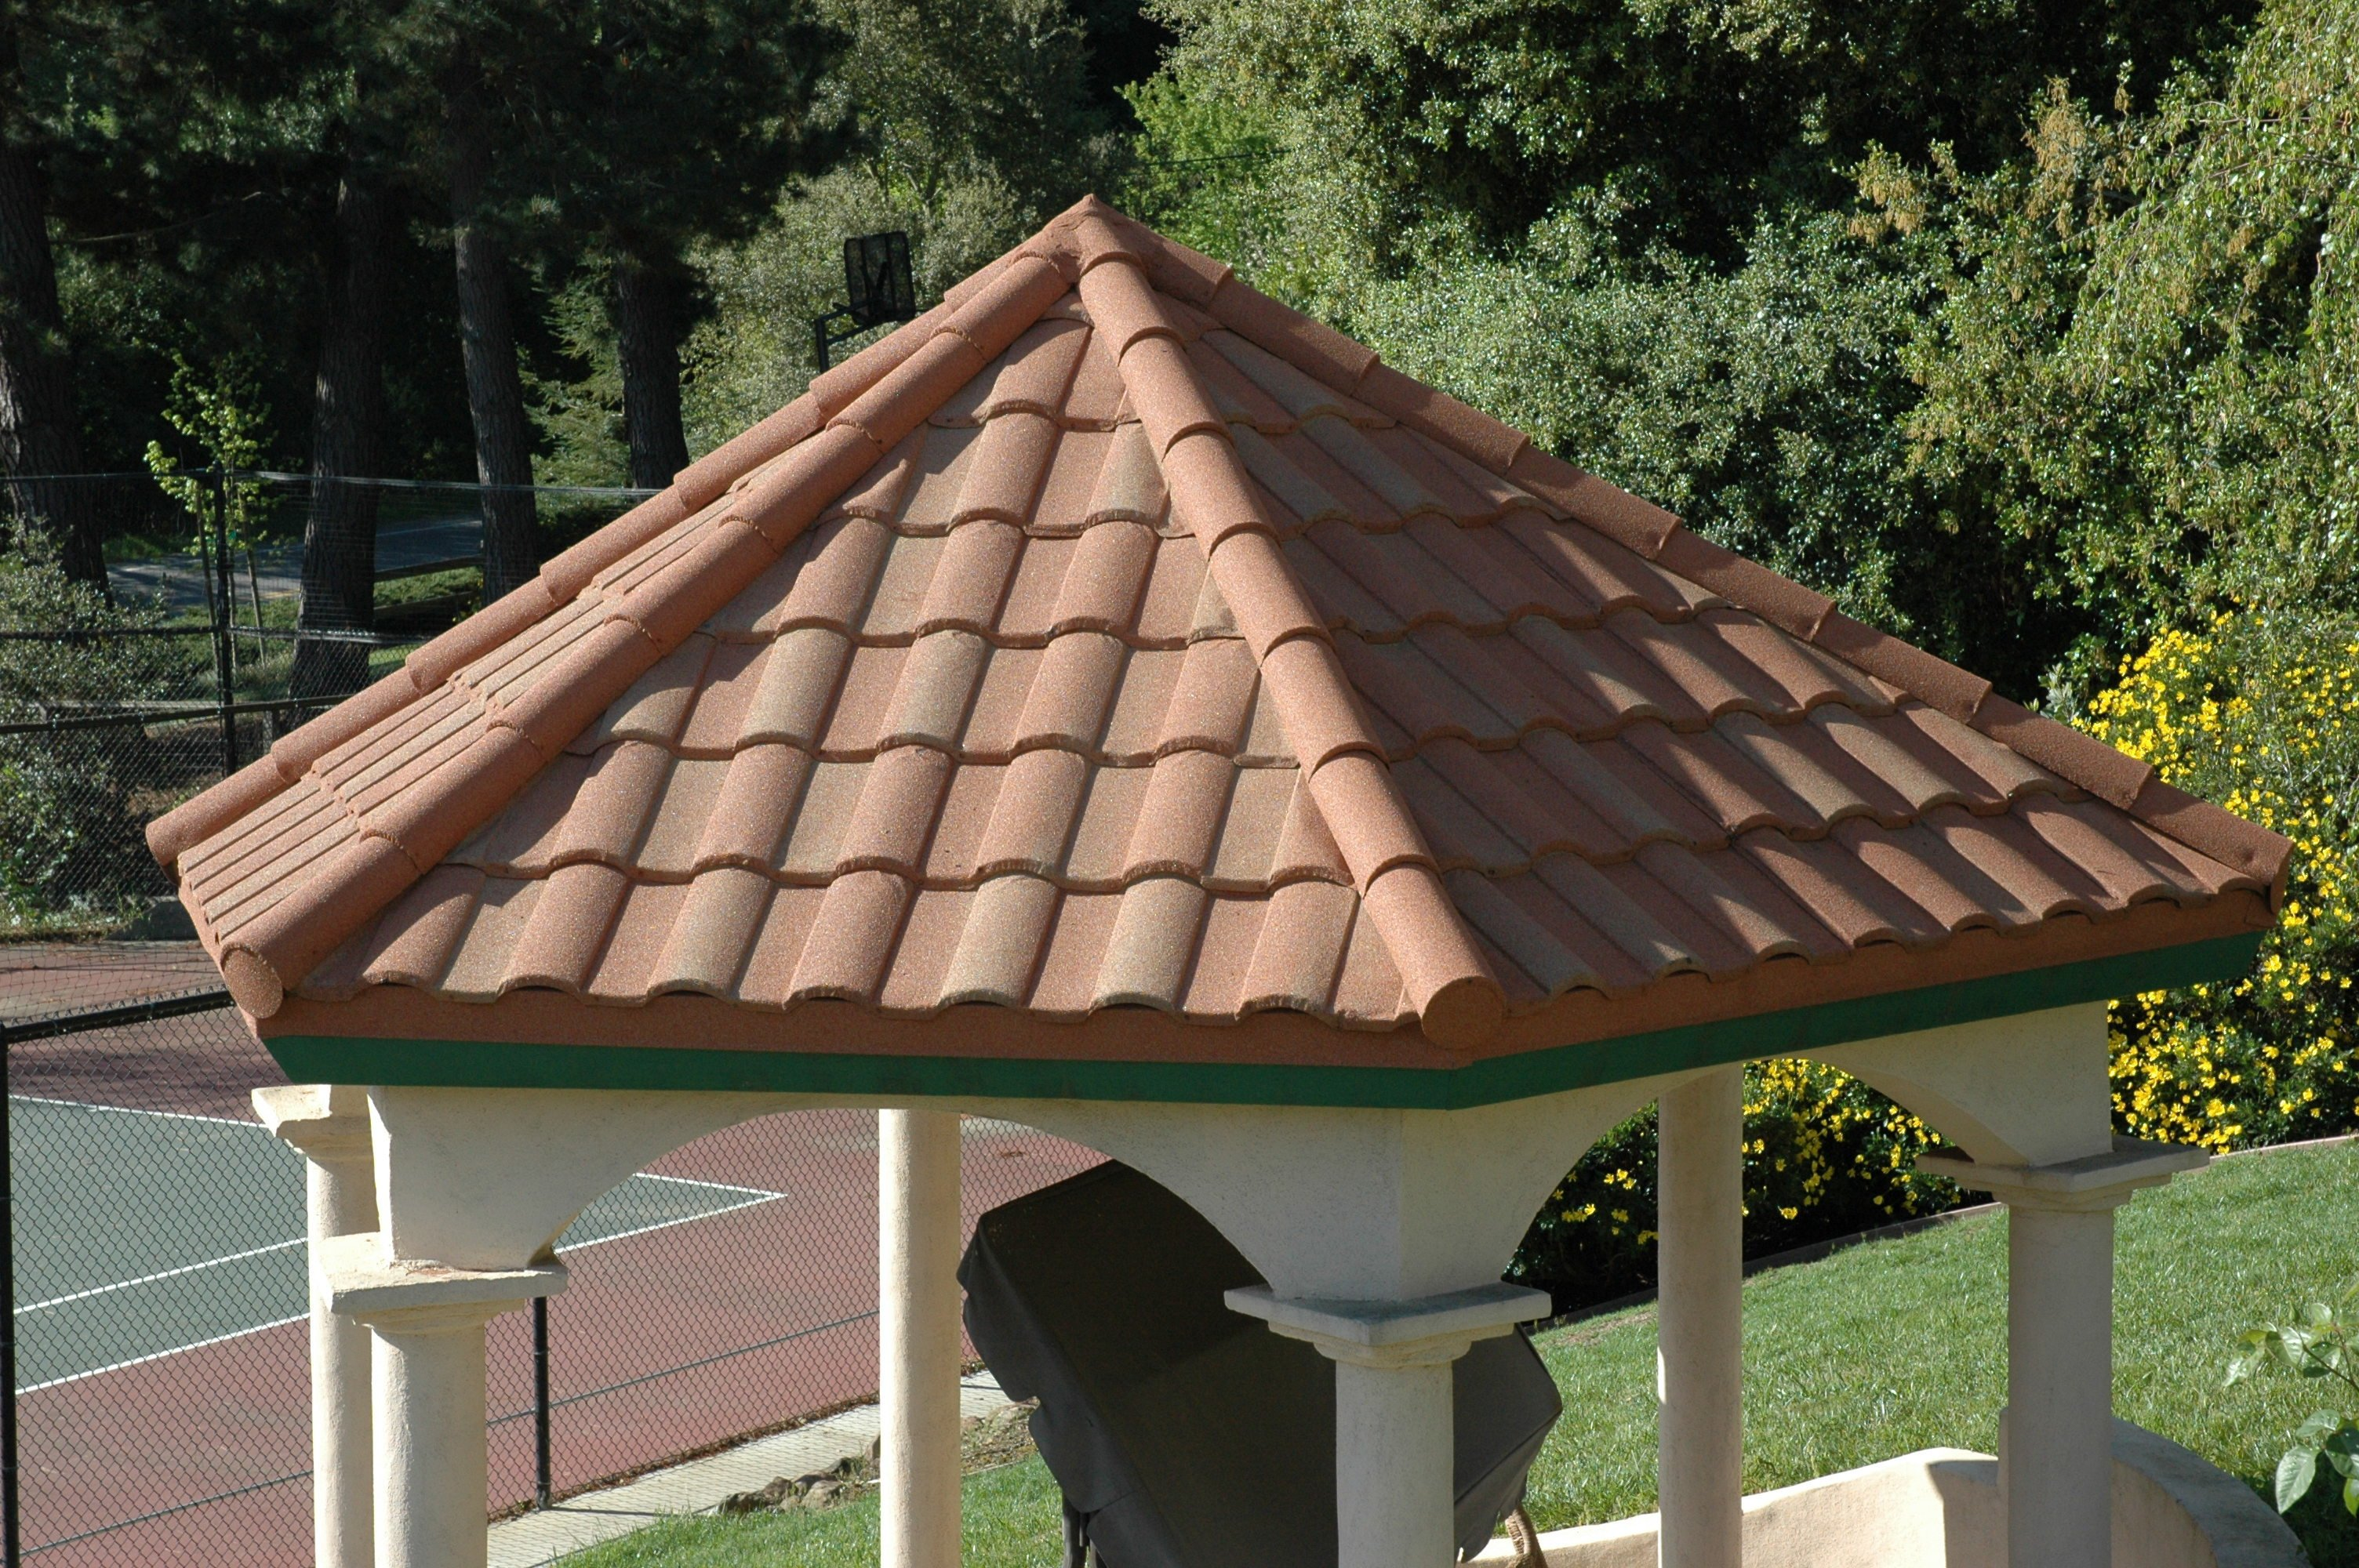 Stone coated steel roofing contractors new roof cost for Barrel tile roof colors